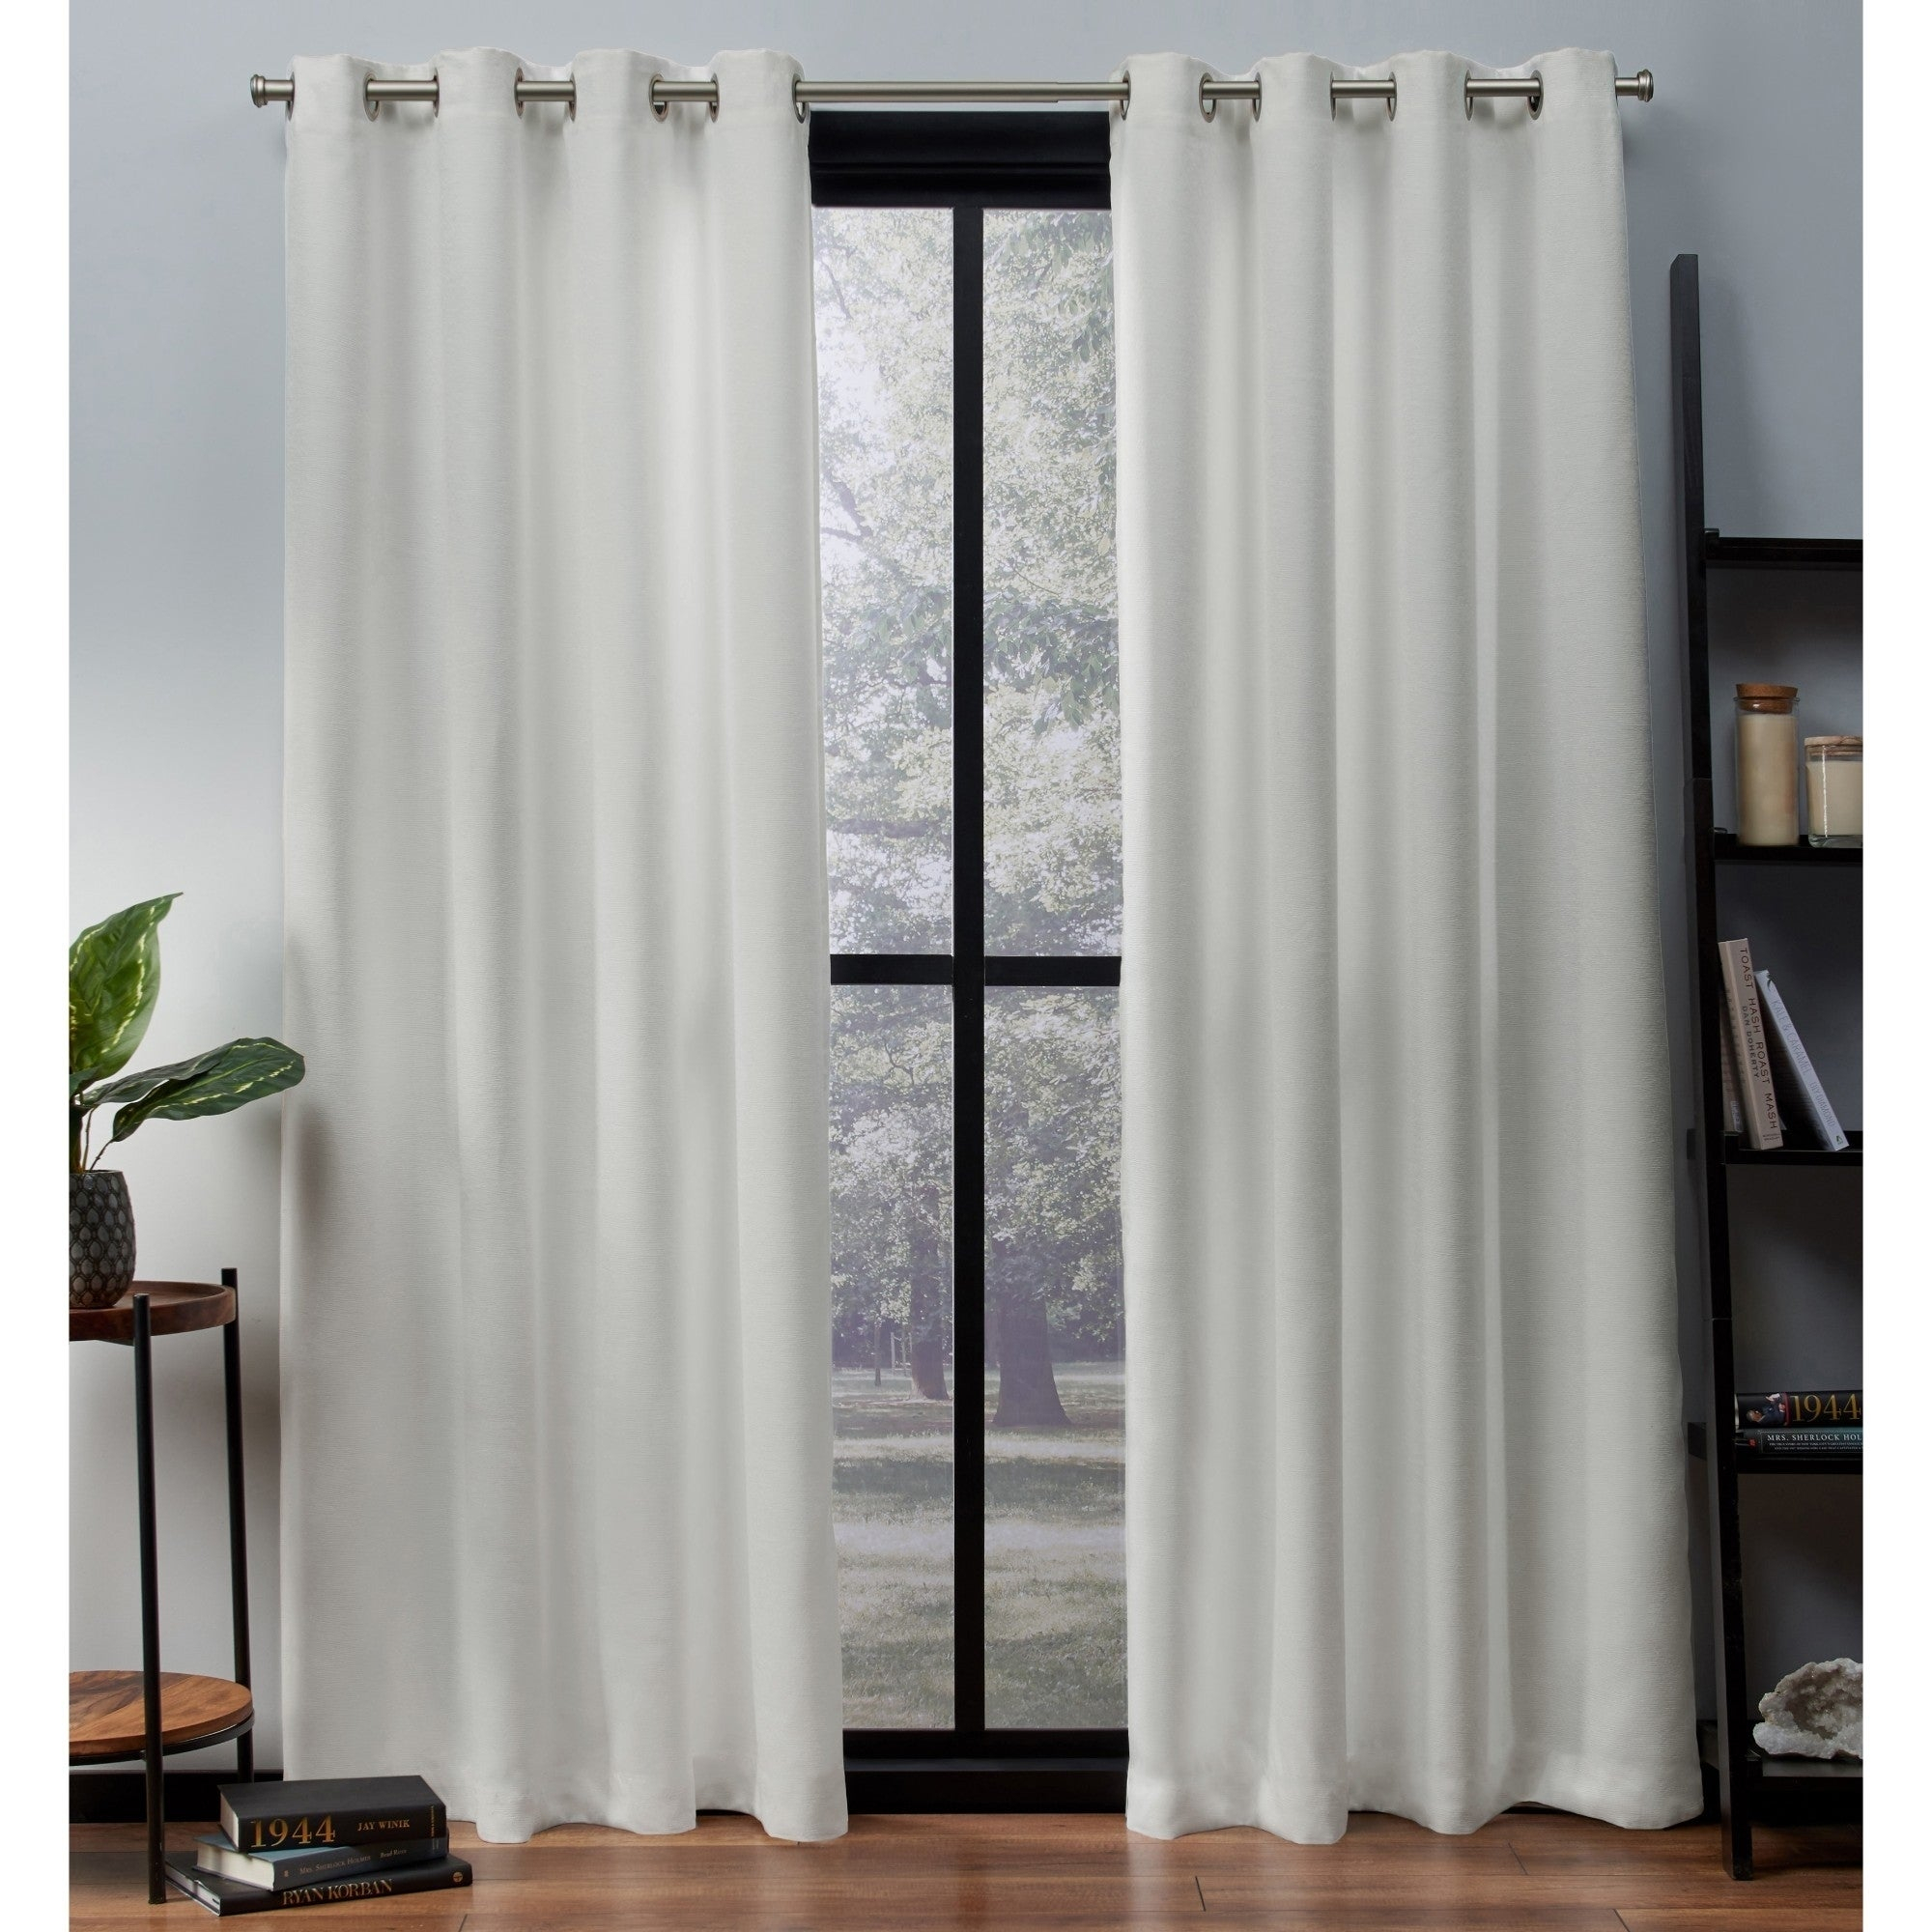 Details About Ati Home Oxford Sateen Woven Blackout Grommet Top Curtain In Catarina Layered Curtain Panel Pairs With Grommet Top (View 16 of 20)